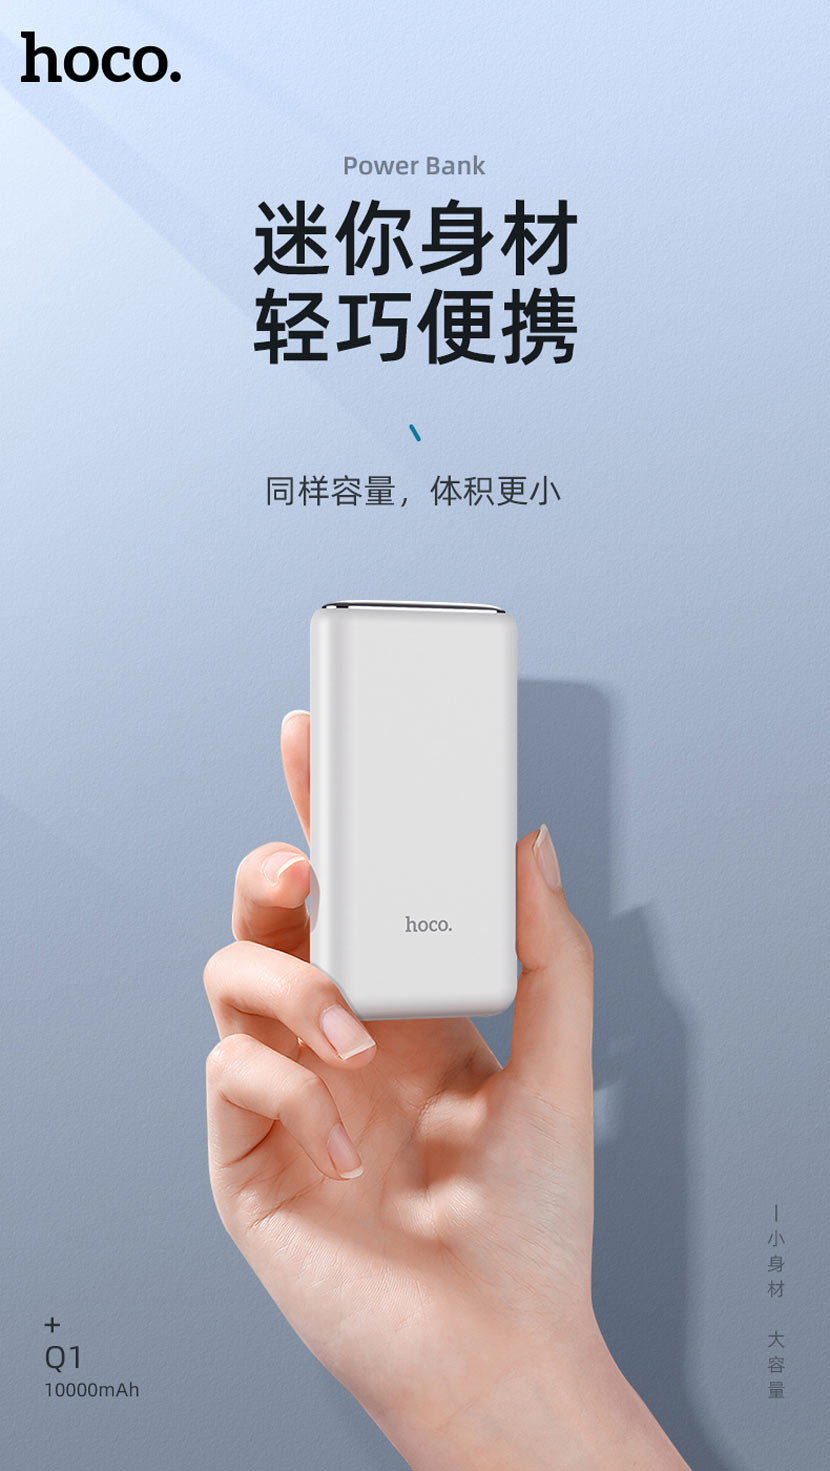 hoco news q1 kraft fully compatible power bank mini cn